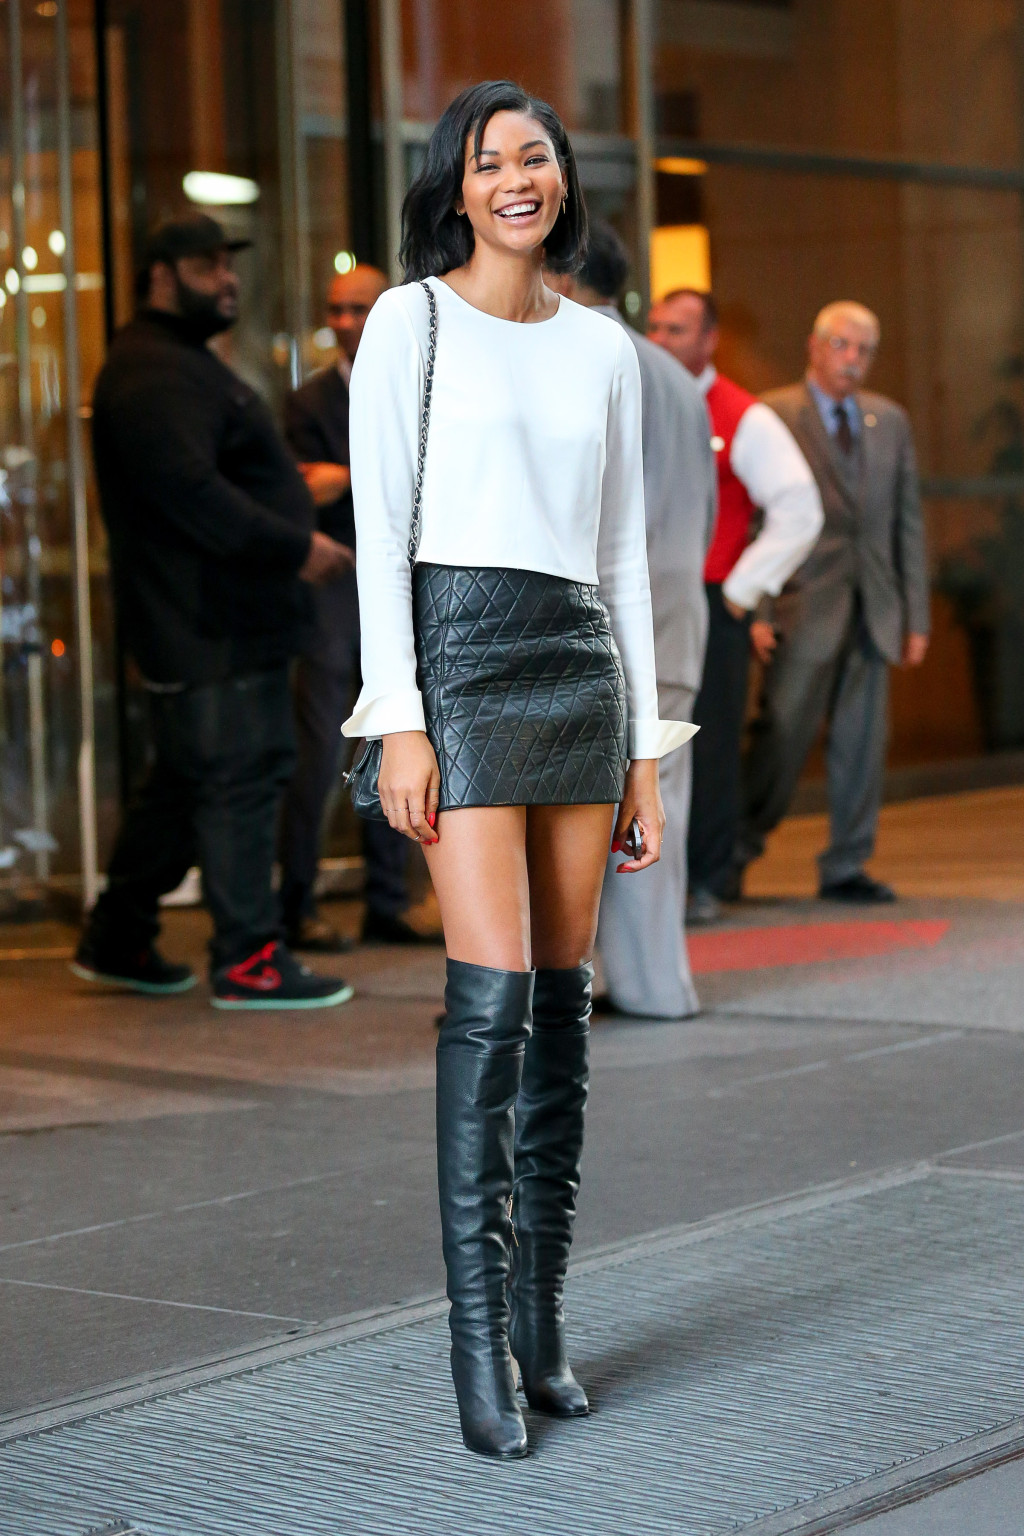 Chanel Iman spotted smiling while out and about in New York City